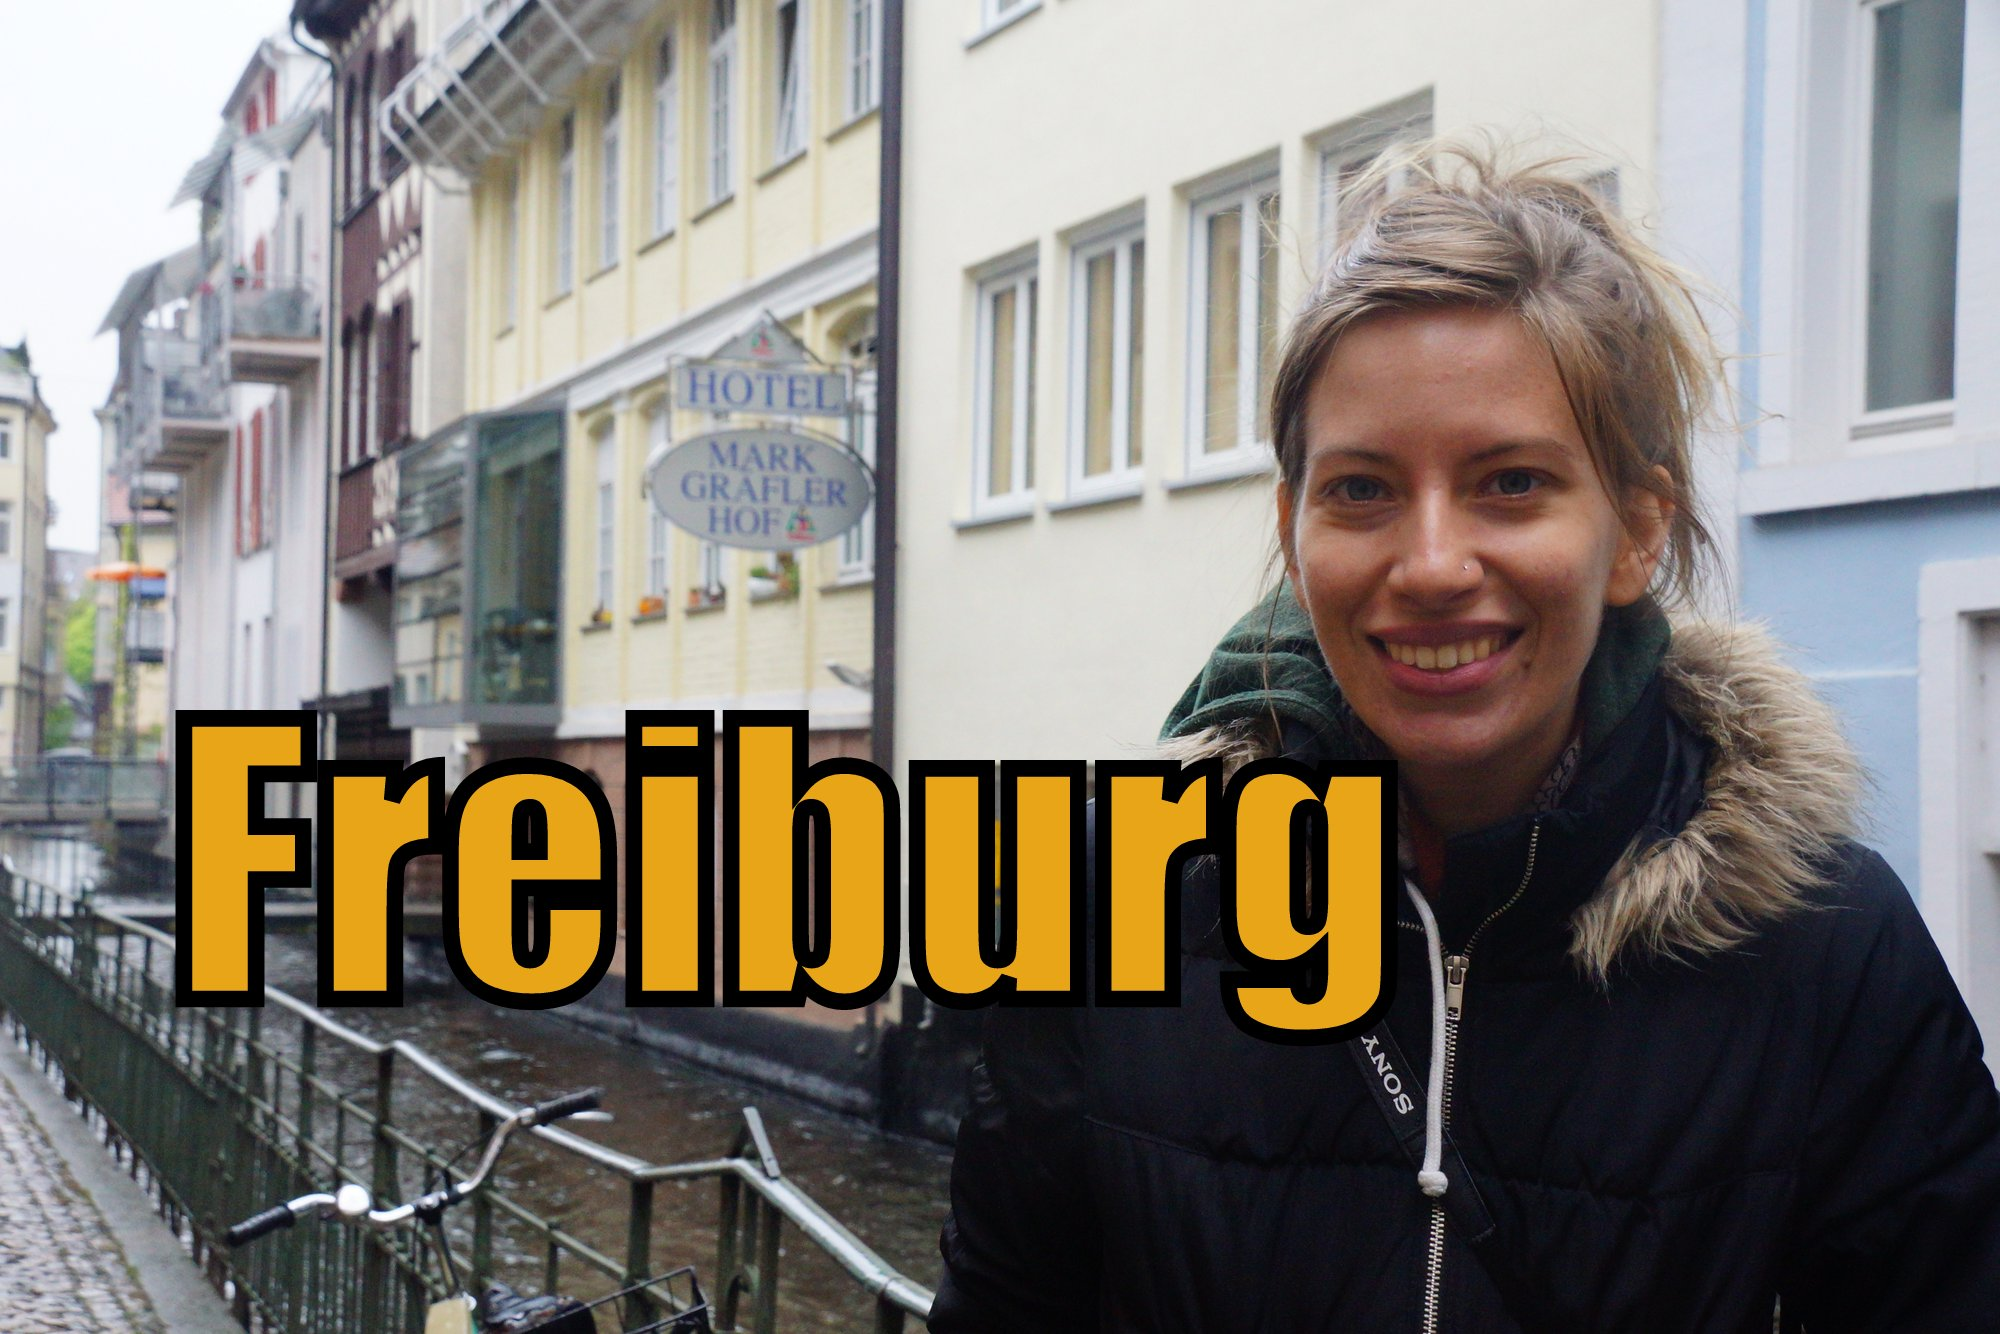 Our day exploring Freiburg while traveling across Germany